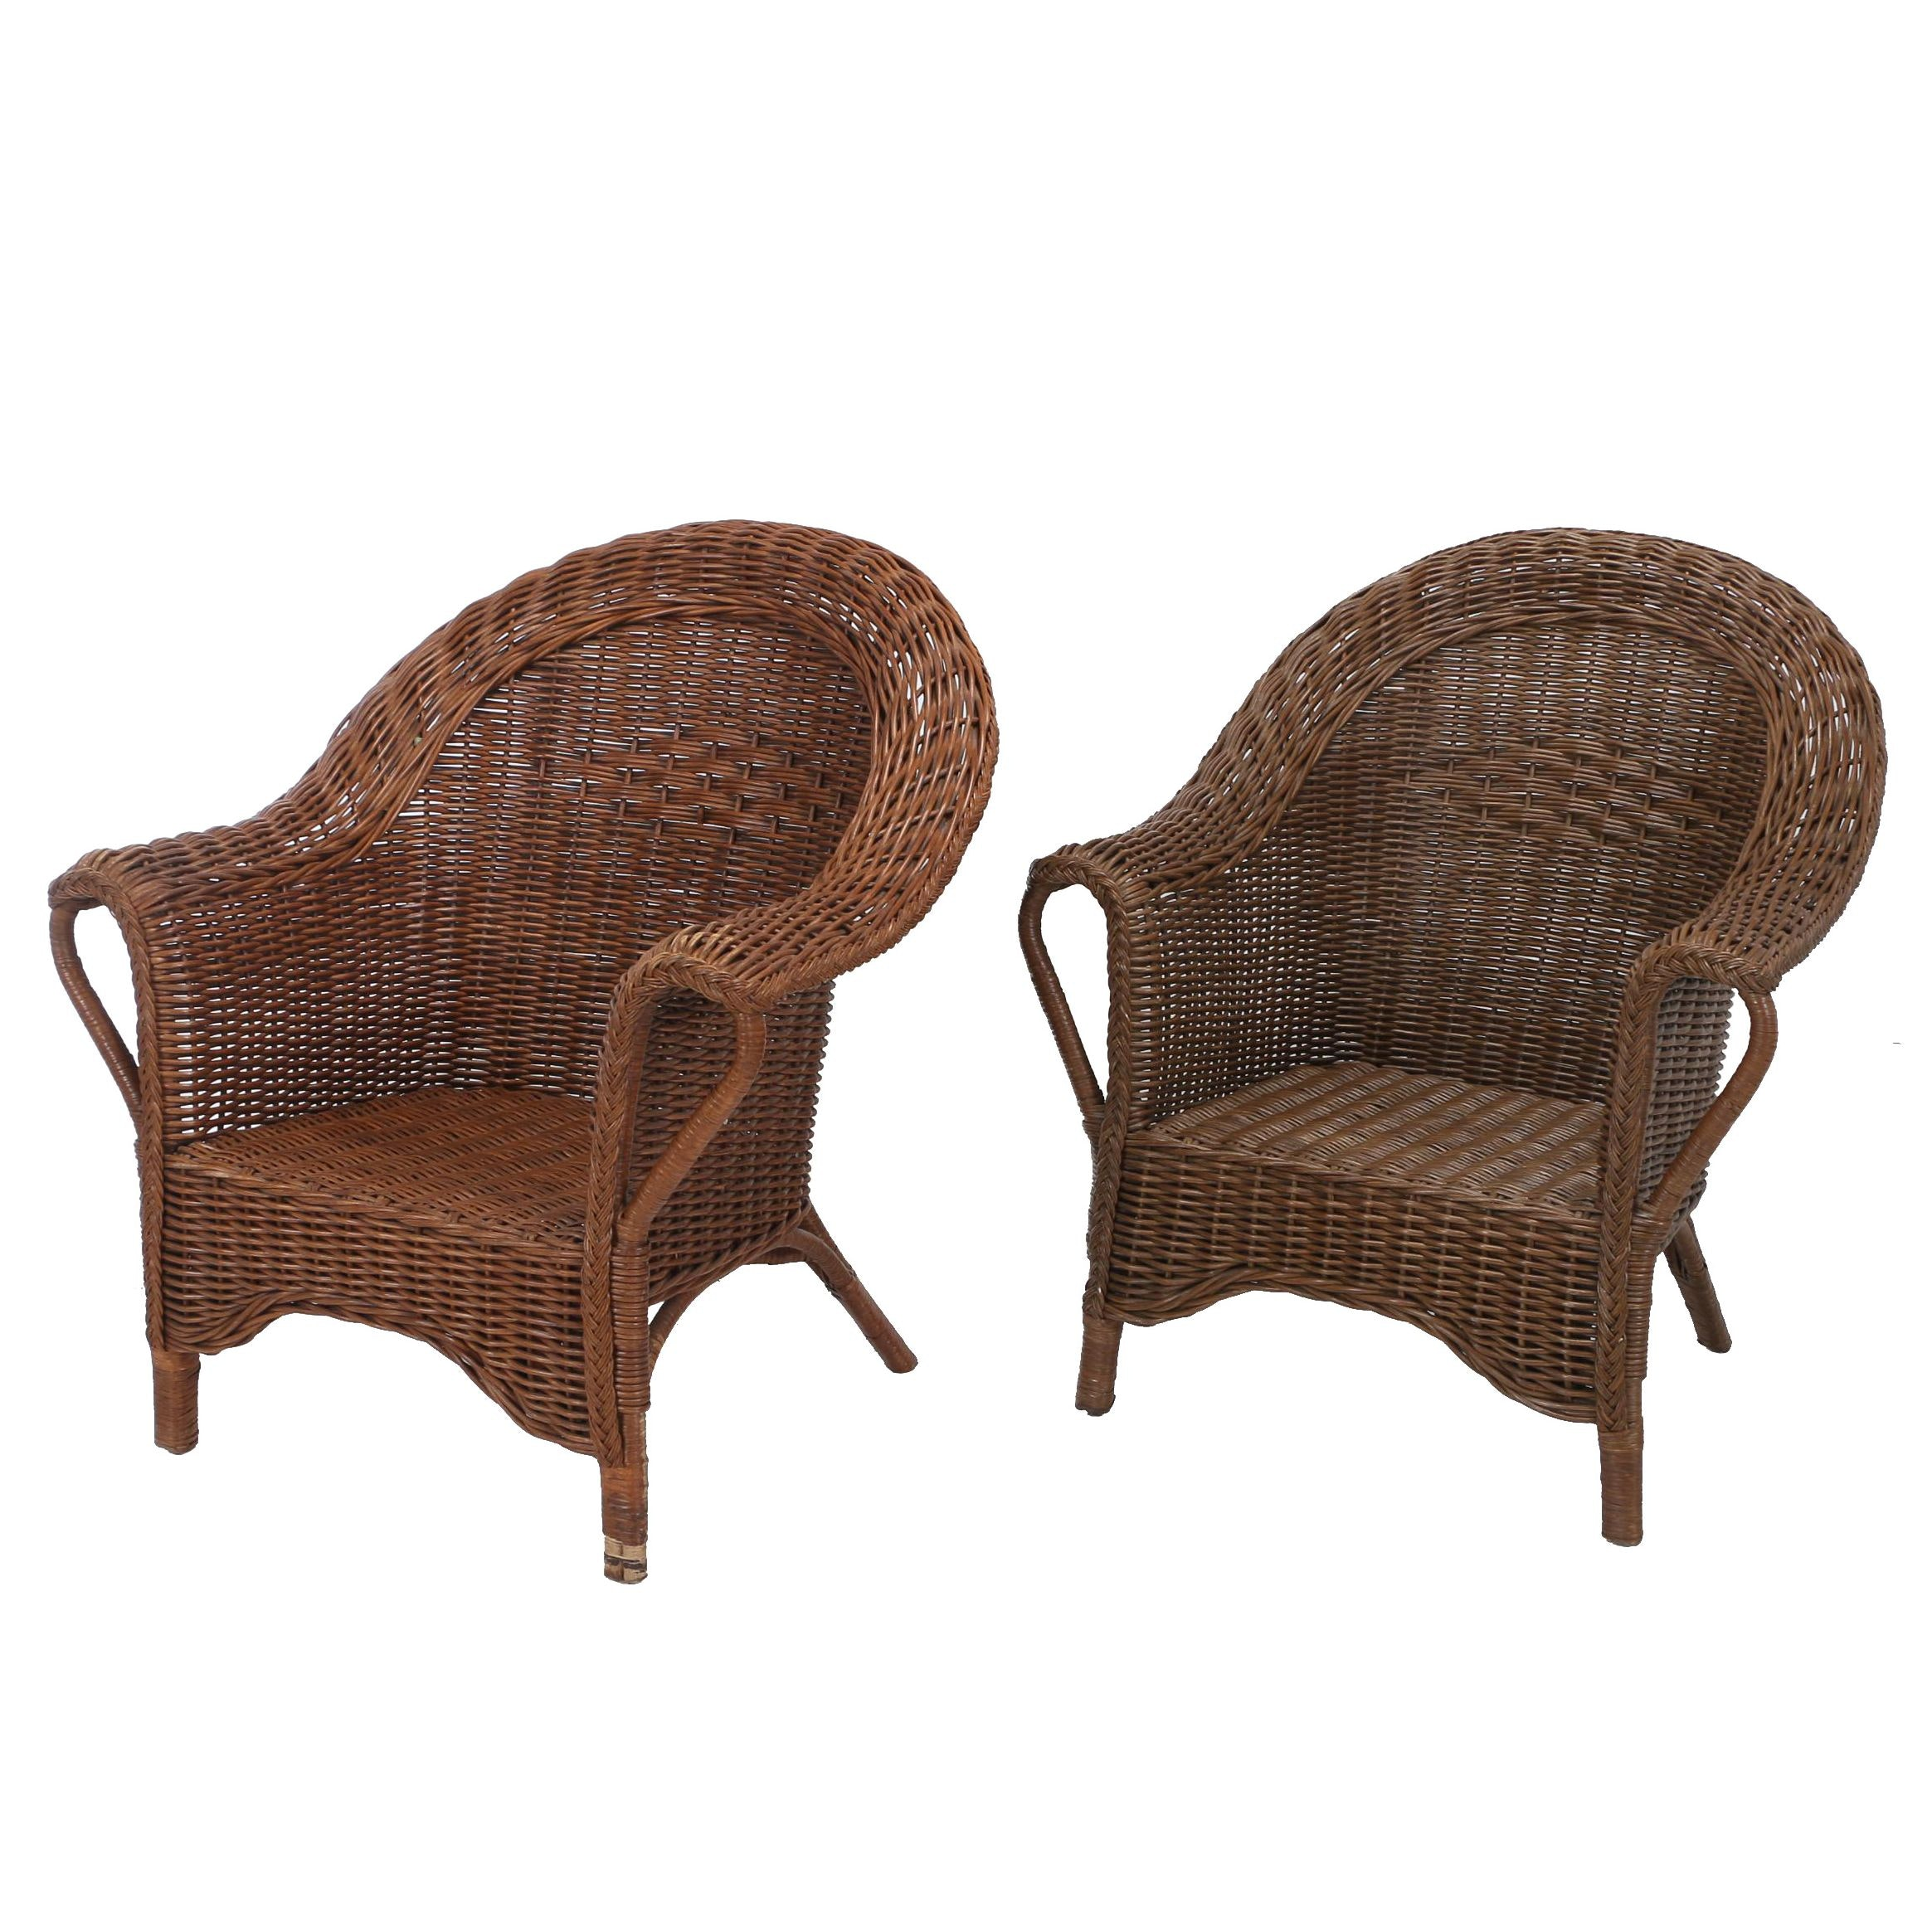 Contemporary Brown Wicker Patio Armchairs by Palecek